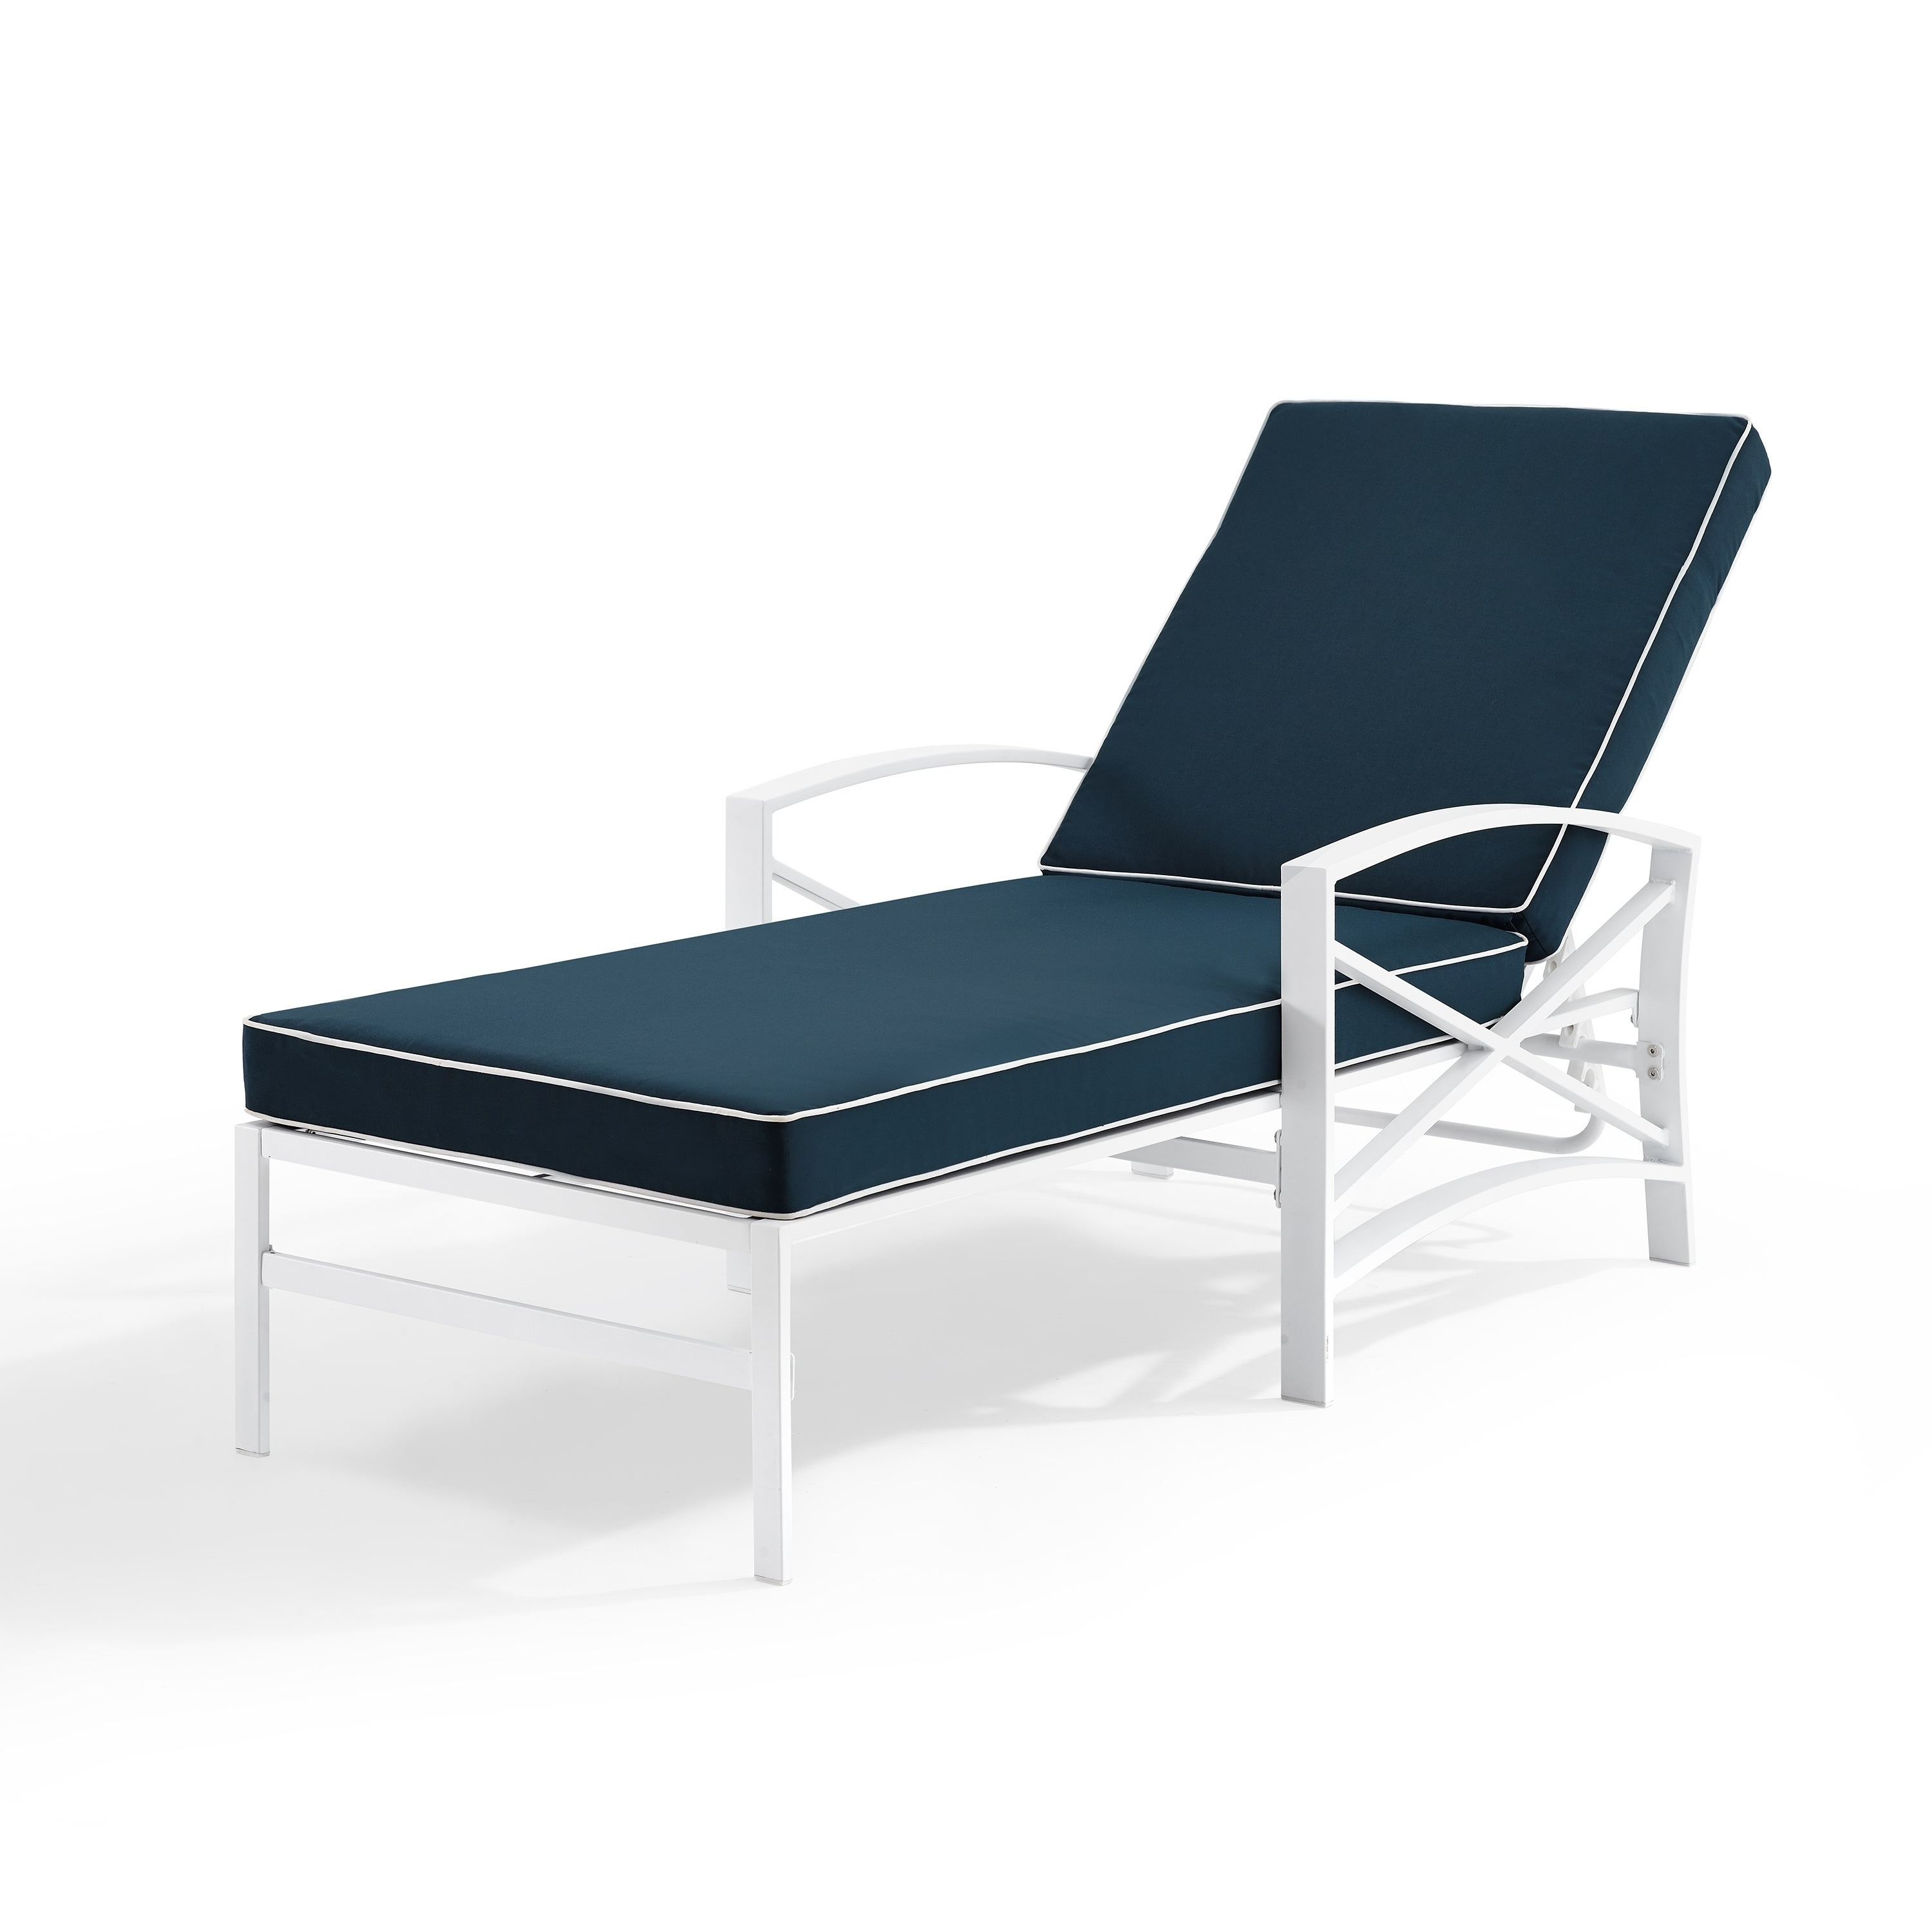 Havenside Home Davis Chaise Lounge Chair In White With Navy Cushions Pertaining To Most Up To Date Chaise Lounge Chairs In White With Navy Cushions (View 2 of 25)